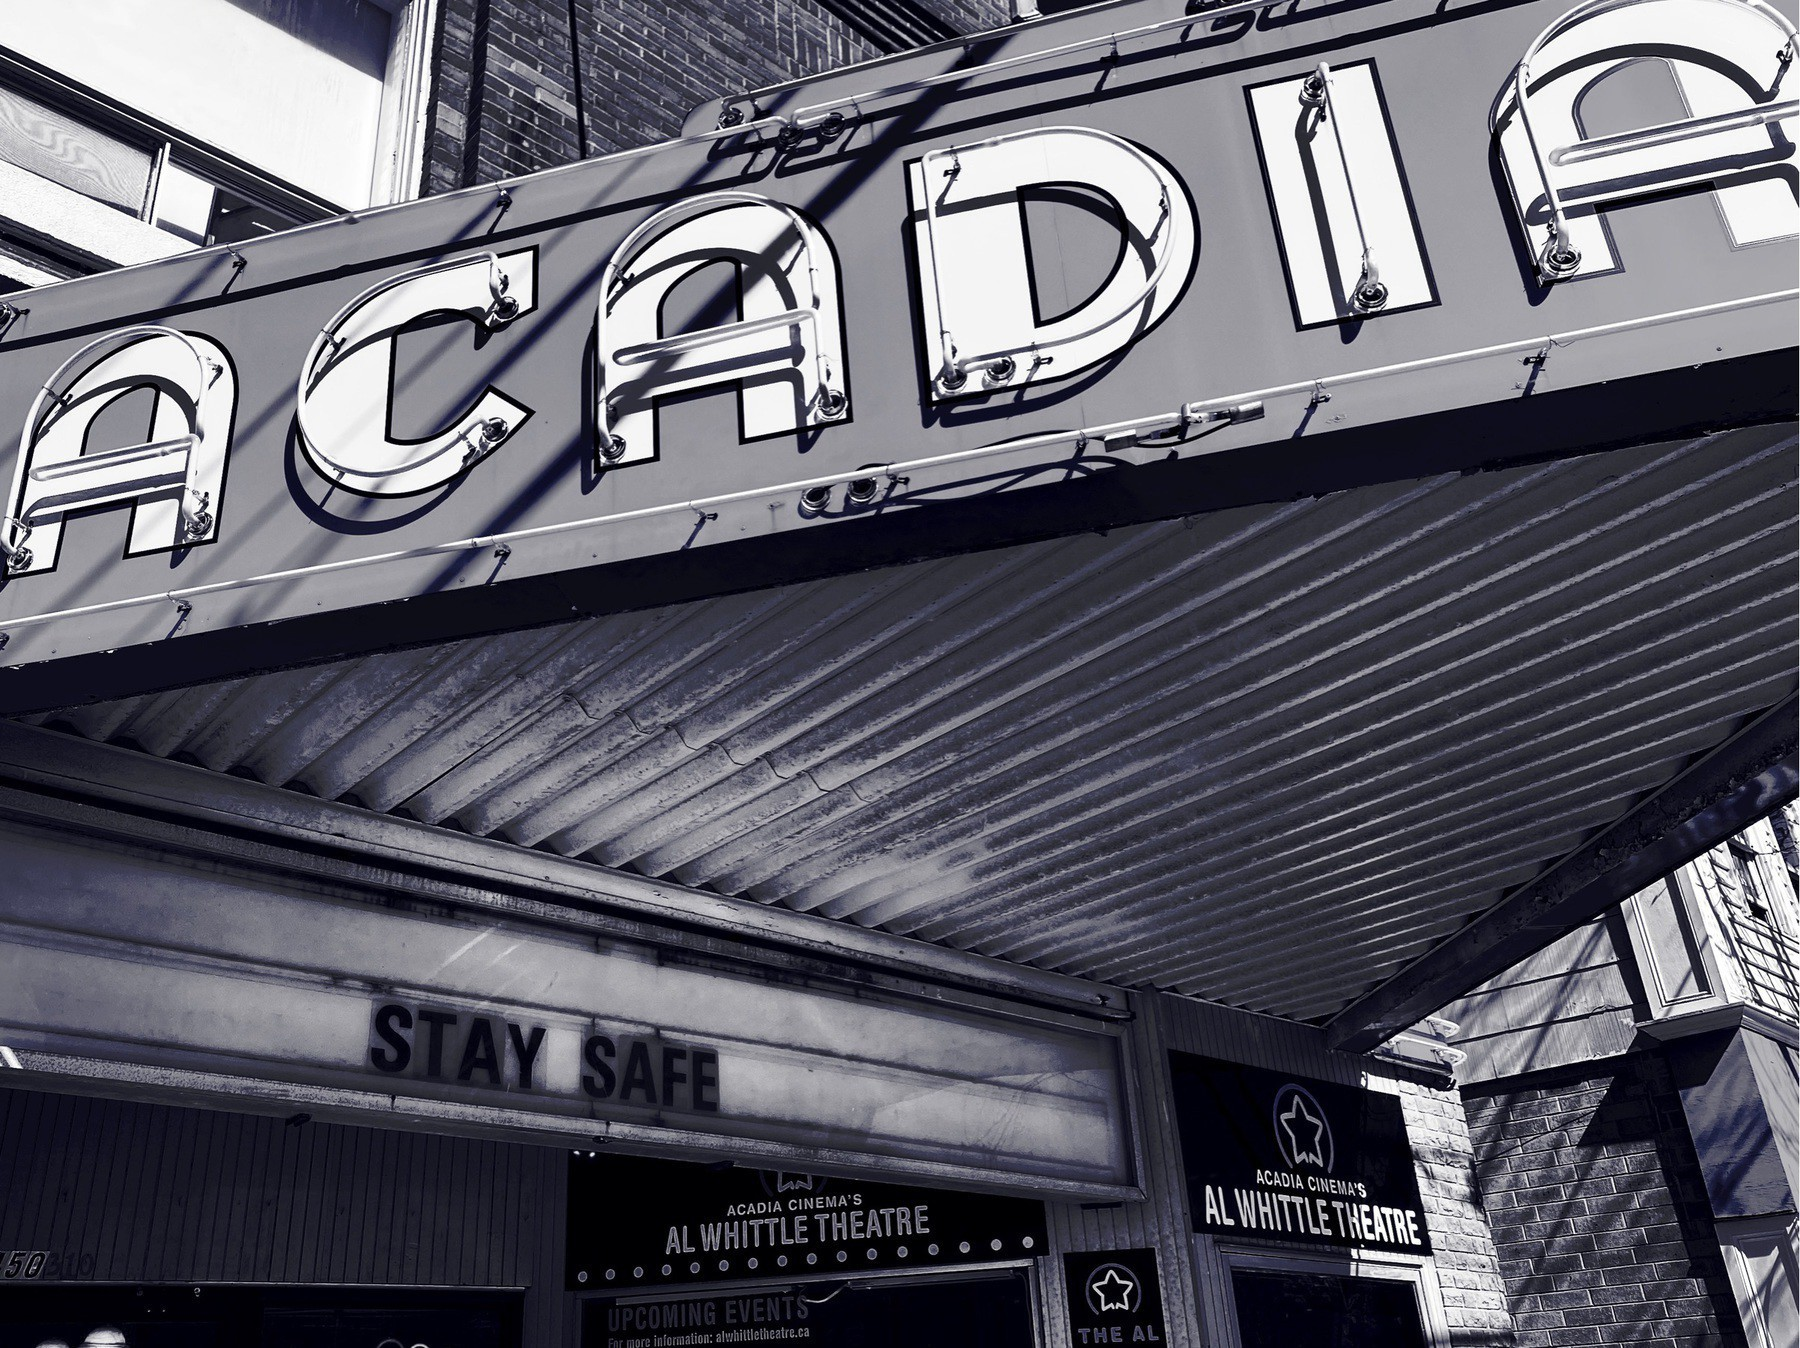 Theatre marquee.